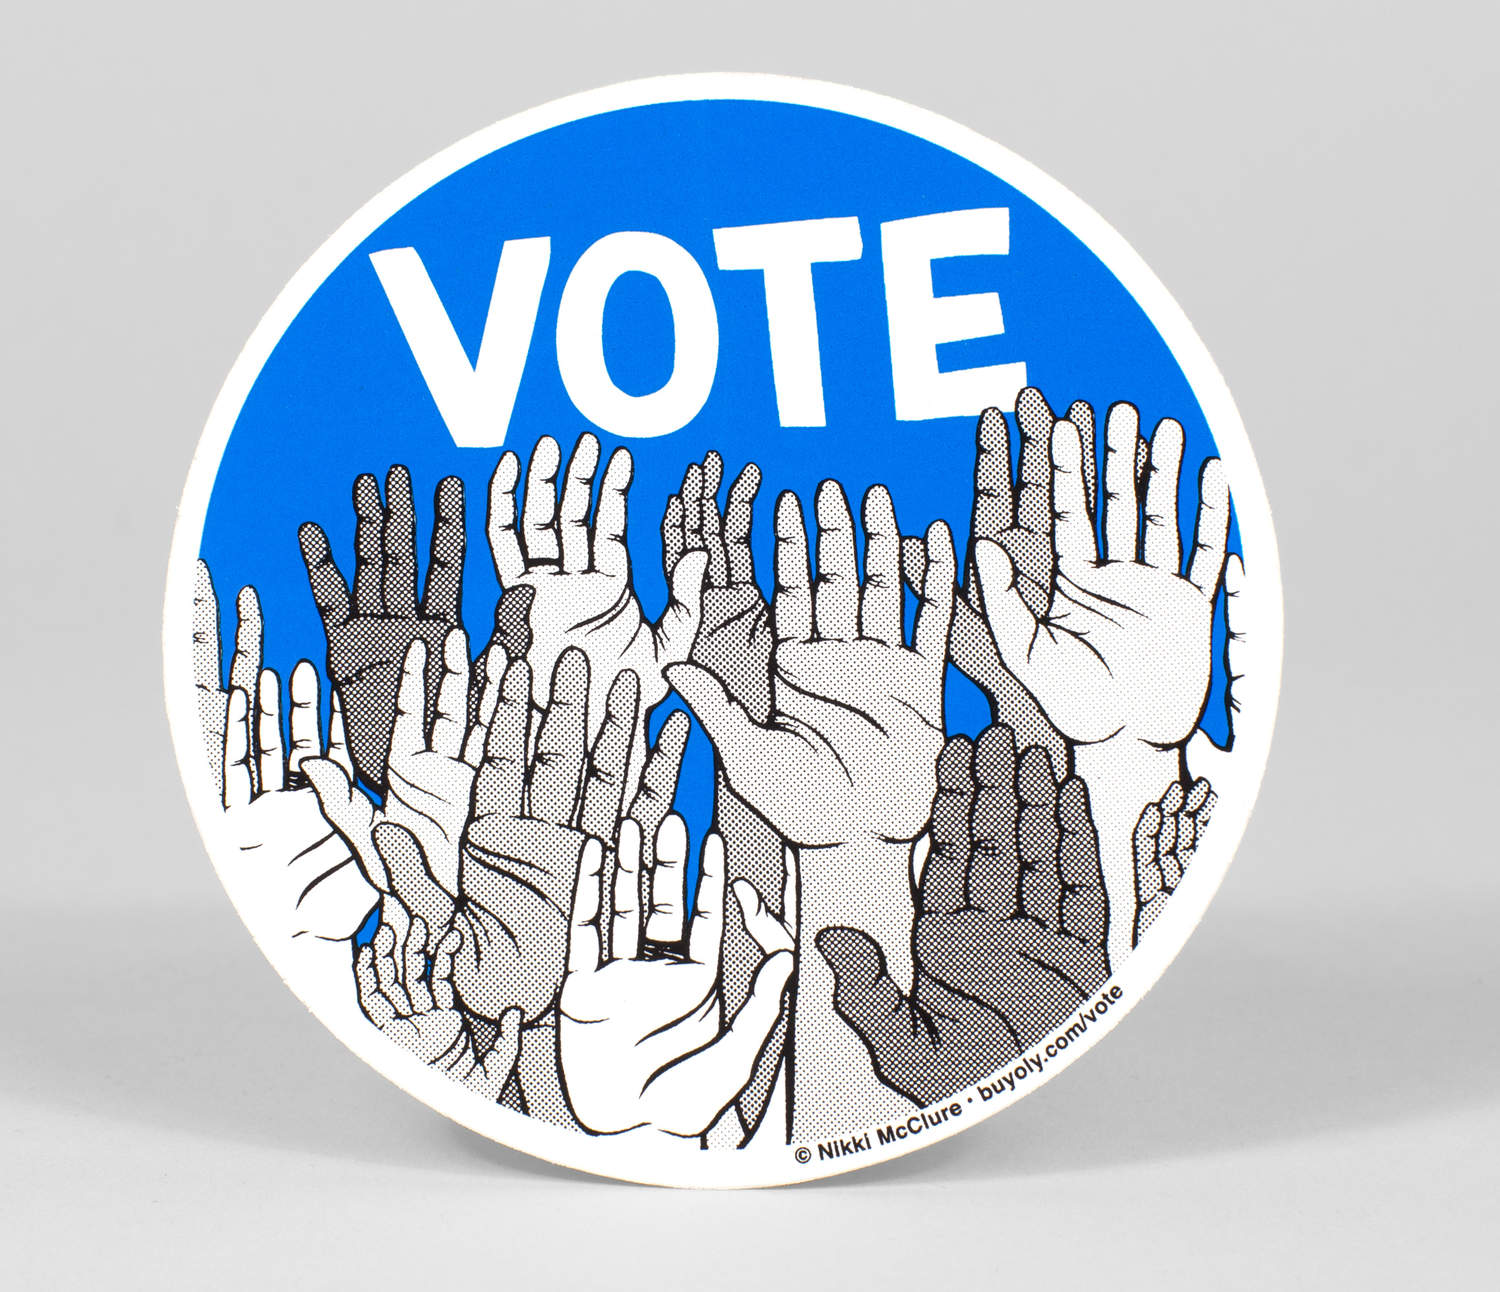 Blue circle sticker that says Vote on the top with a bunch of raised hands below it.